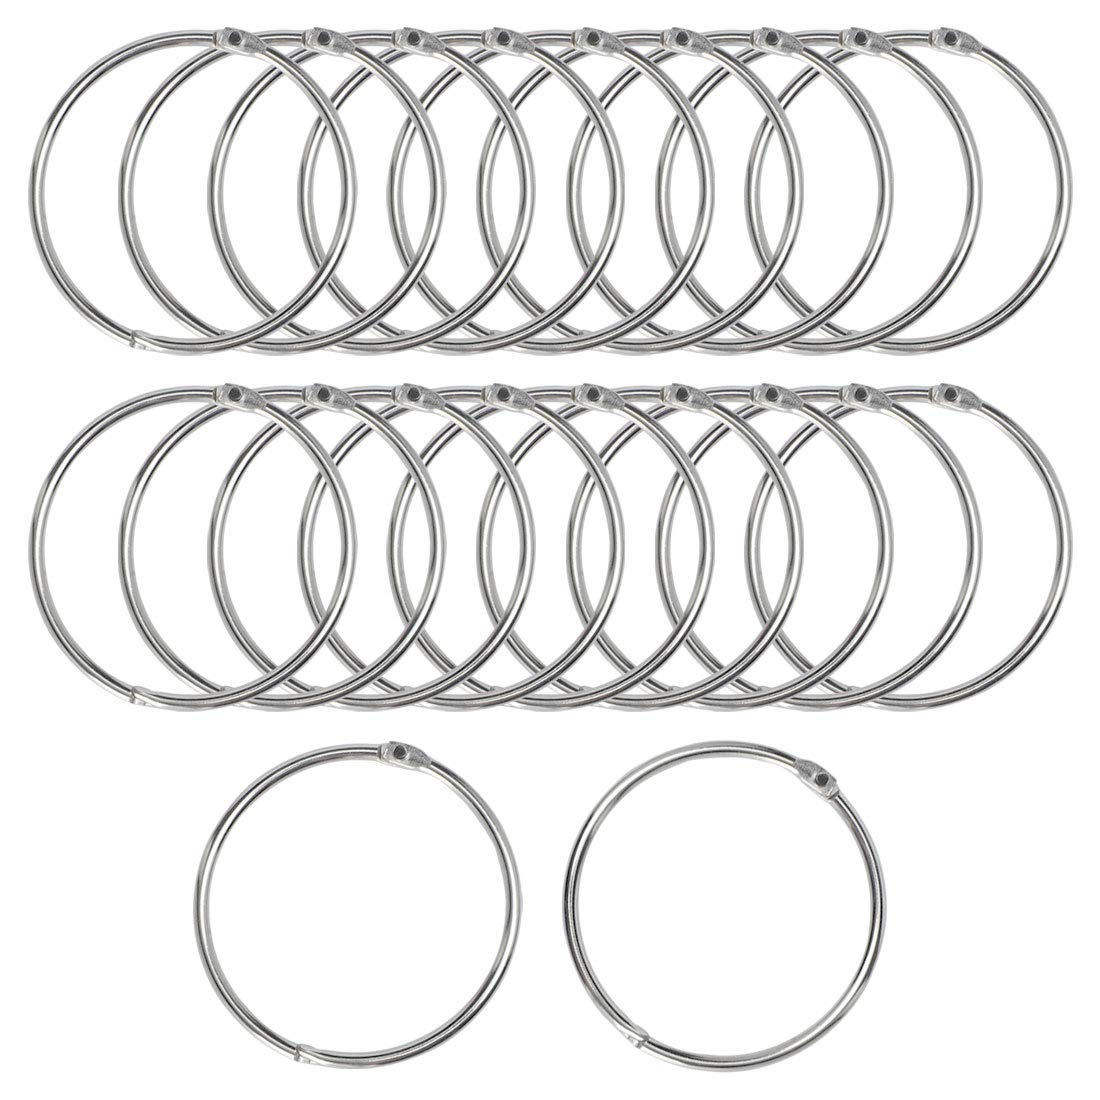 uxcell 20 Pack Metal Curtain 3 Inch Snap Joint Drape Ring Loops for Bathroom Curtain Rods Plating Finish, Silver Tone